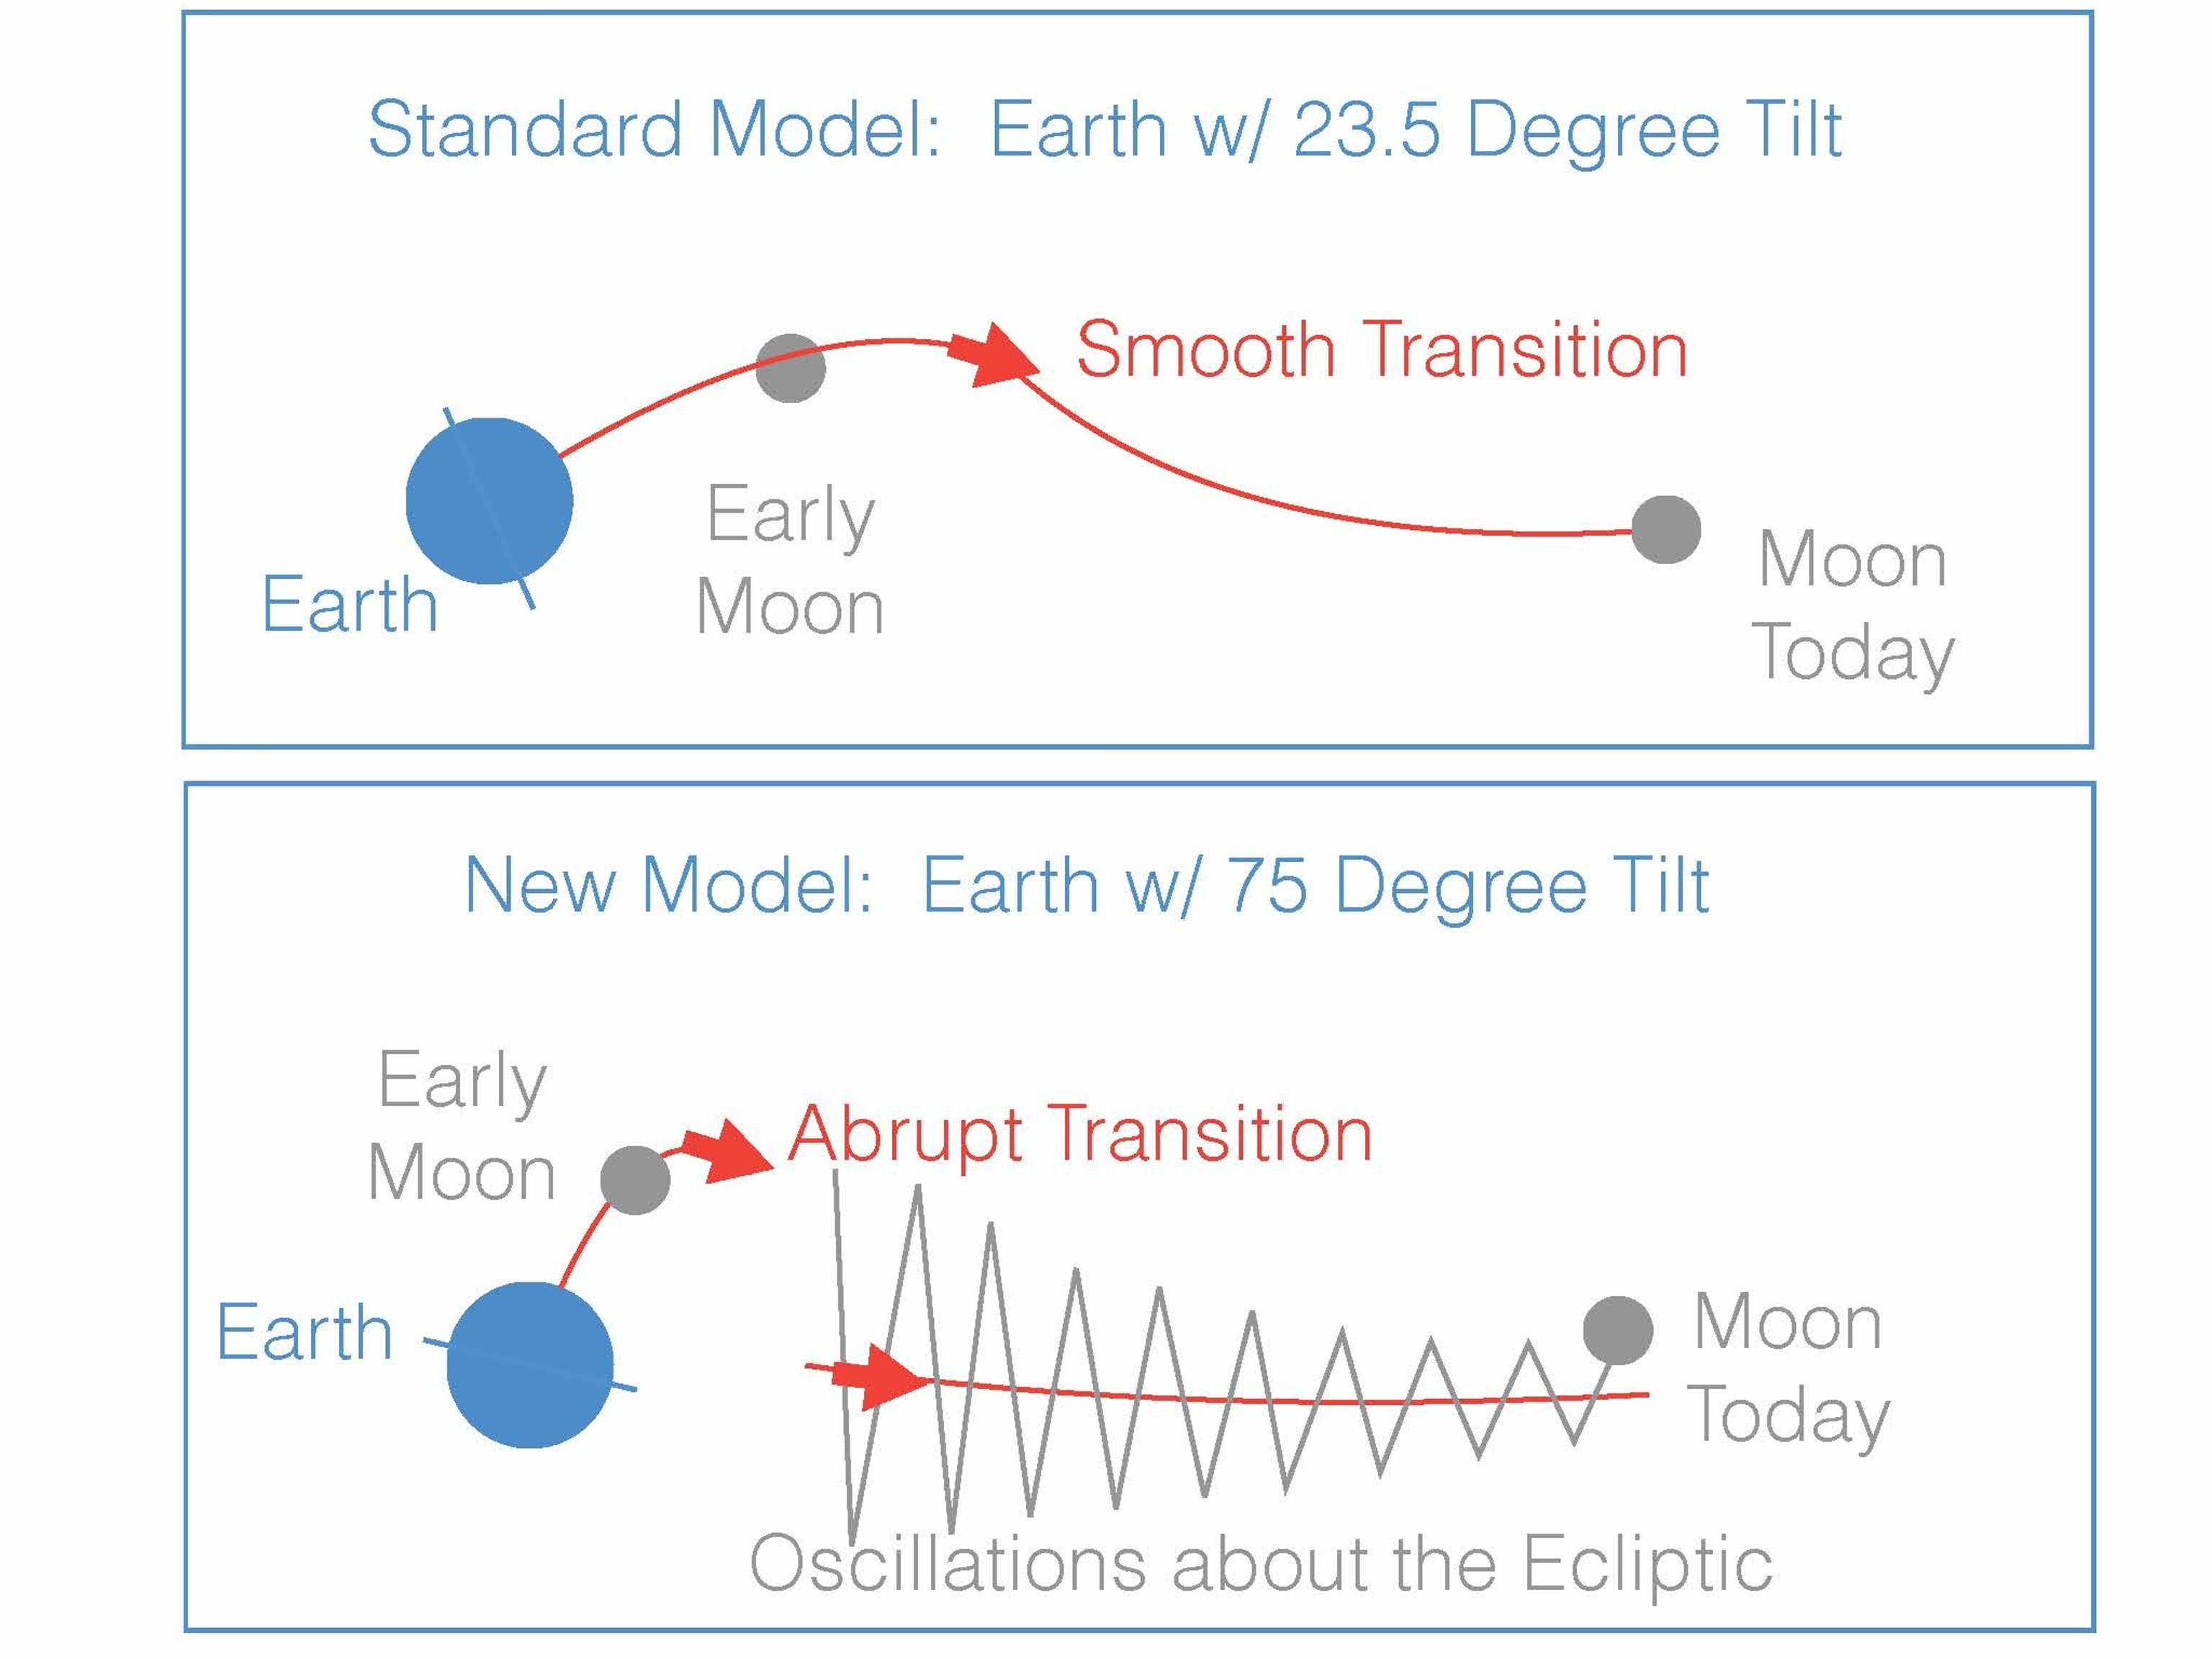 """In the """"giant impact"""" model of the moon's formation, the young moon began its orbit within Earth's equatorial plane. In the standard variant of this model (top panel), Earth's tilt began near today's value of 23.5 degrees. The moon would have moved outward smoothly along a path that slowly changed from the equatorial plane to the """"ecliptic"""" plane, defined by Earth's orbit around the sun. If, however, Earth had a much larger tilt after the impact (~75 degrees, lower panel) then the transition between the equatorial and ecliptic planes would have been abrupt, resulting in large oscillations about the ecliptic. The second picture is consistent with the moon's current 5-degree orbital tilt away from the ecliptic."""